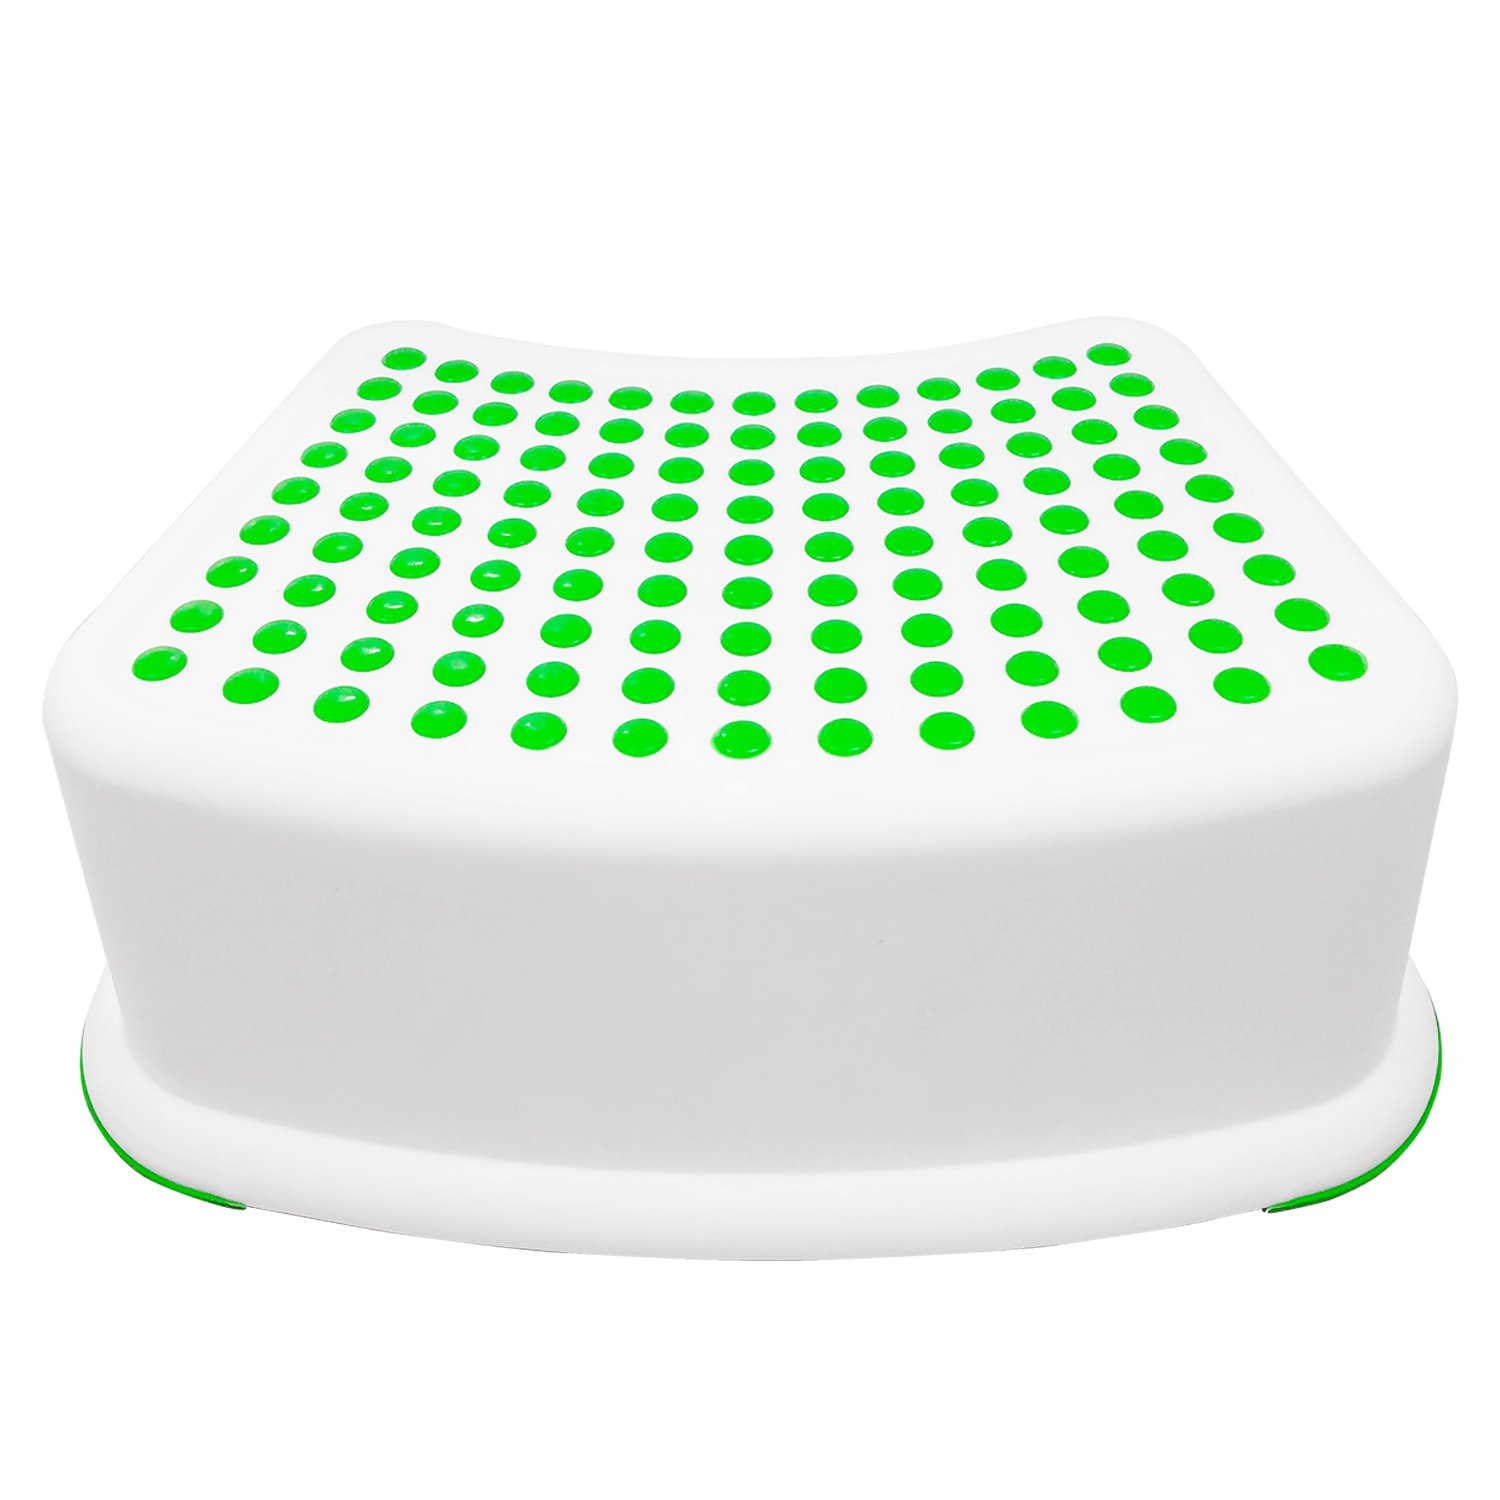 Amazon.com  Kids Green Step Stool - Great For Potty Training Bathroom Bedroom Toy Room Kitchen and Living Room. Perfect For Your House  Baby  sc 1 st  Amazon.com : toddler step stool - islam-shia.org